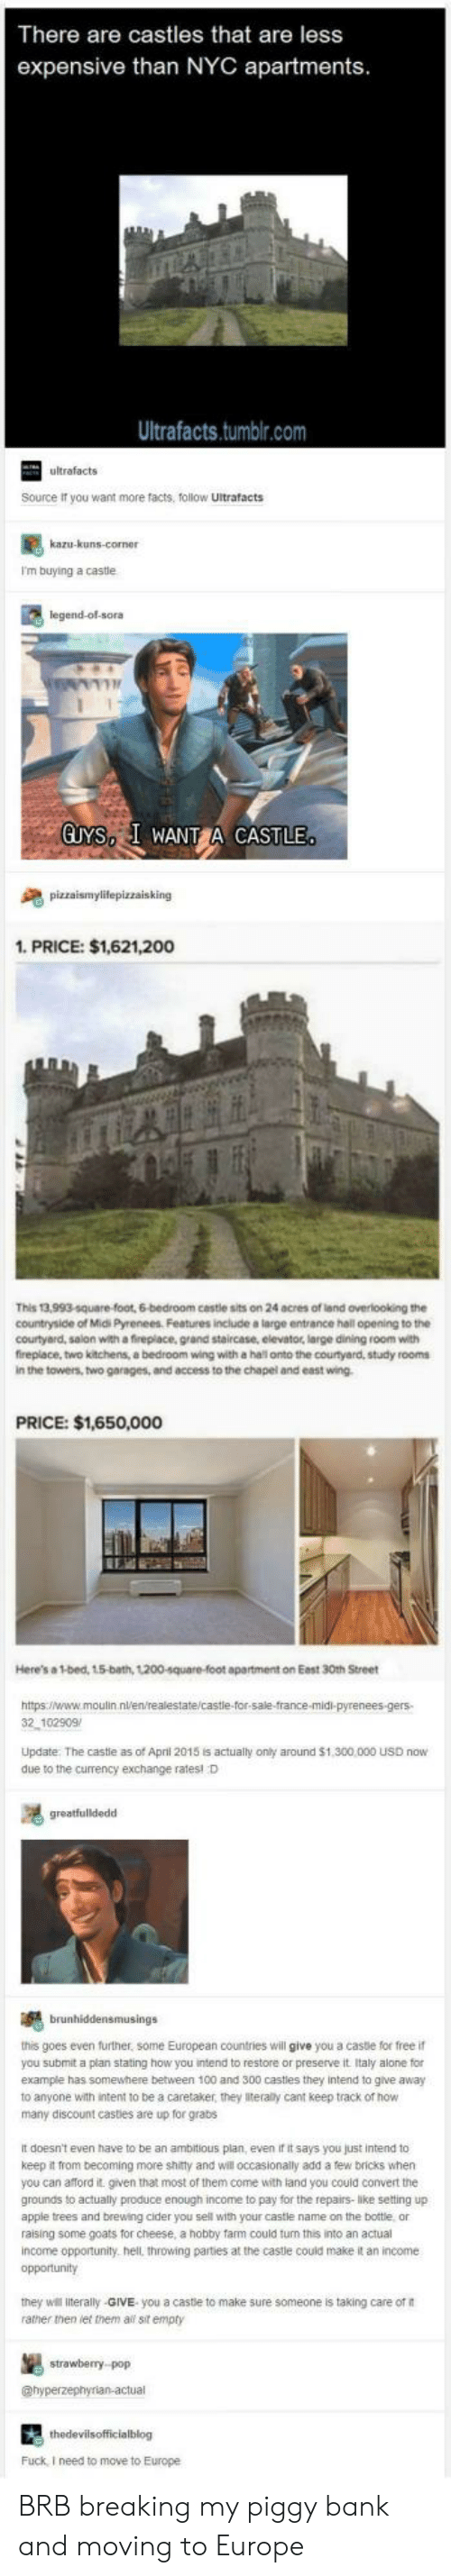 Being Alone, Anaconda, and Apple: There are castles that are less  expensive than NYC apartments  Ultrafacts.tumblr.com  ultrafacts  Source it you want more facts, follow Ultrafacts  I'm buying a castle  legend-ol-sora  GUYS I WANT CASTLE  1. PRICE: $1,621,200  This 13,993-square-foot, 6-bedroom cestle sits on 24 acres of land overlooking the  countryside of Midi Pyrenees. Features include a large entrance hall opening to the  courtyard, salon with a fireplace, grand staircase, elevator, large dining room with  fireplace, two kitchens, a bedroom wing with a hal onto the courtyard, study rooms  in the towers, two garages, and access to the chapel and east wing  PRICE: $1,650,000  Here's a 1-bed, 15-bath, 1200-square-foot apartment on Eest 30th Street  2 102909  Update The castle as of April 2015 is actualy only around $1,300,000 USD now  due to the currency exchange ratesl D  this goes even further, some European countries will give you a castle for free if  you submit a plan stating how you intend to restore or preserve it Italy alone for  example has somewhere between 100 and 300 castles they intend to give away  to anyone with intent to be a caretaker, they iteraly cant keep track of how  many discount casties are up for grabs  It doesn't even have to be an ambitious plan, even it it says you just intend to  keep it from becoming more shitty and will occasionally add a few bricks when  you can aford it. given that most of them come with land you could convert the  grounds to actually produce enough income to pay for the repairs-like setting up  apple trees and brewing cider you sell with your castle name on the bottle or  raising some goats for cheese, a hobby farm could turn this into an actual  income opportunity. hell, throwing parties at the caste could make it an income  opportunity  they will literally-GIVE you a caste to make sure someone is taking care of  ramer men let them a sit empty  stowebery  Fuck, I need to move to Europe BRB breaking my piggy bank 